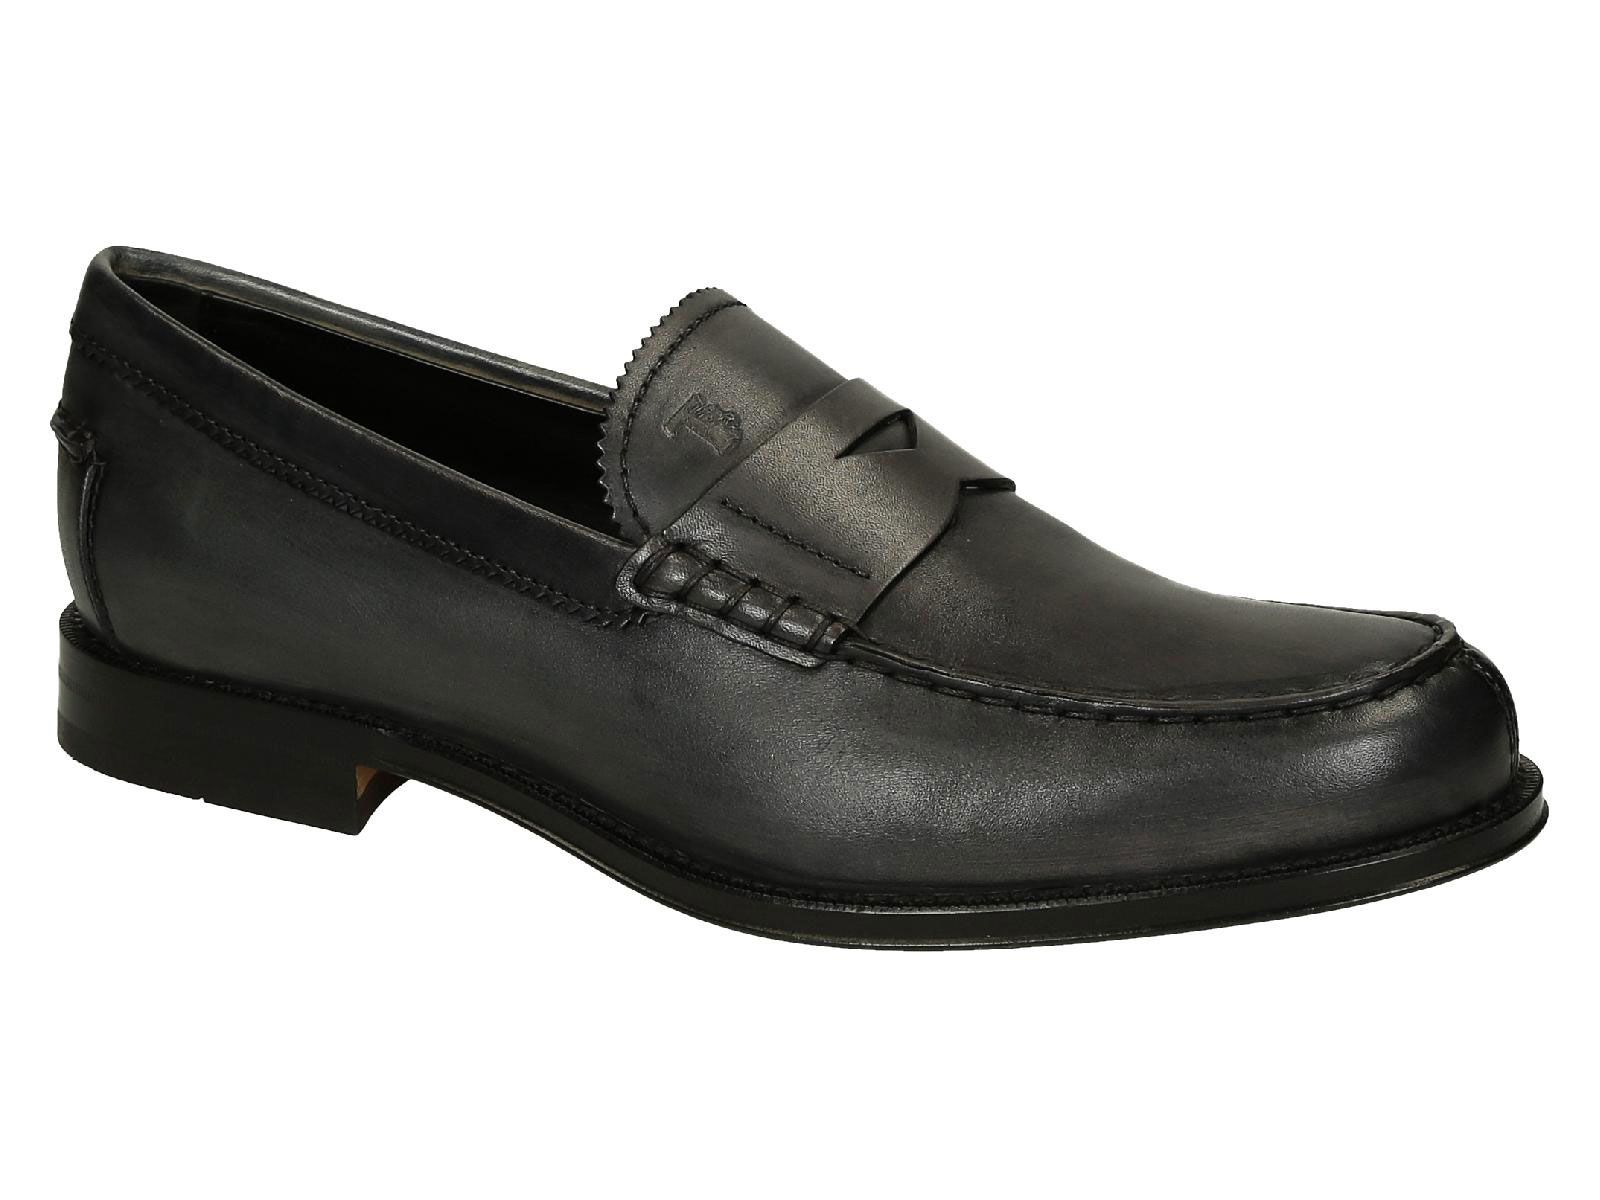 competitive price b766d c309f Tod's men's penny loafers in Anthracite Leather - Italian ...